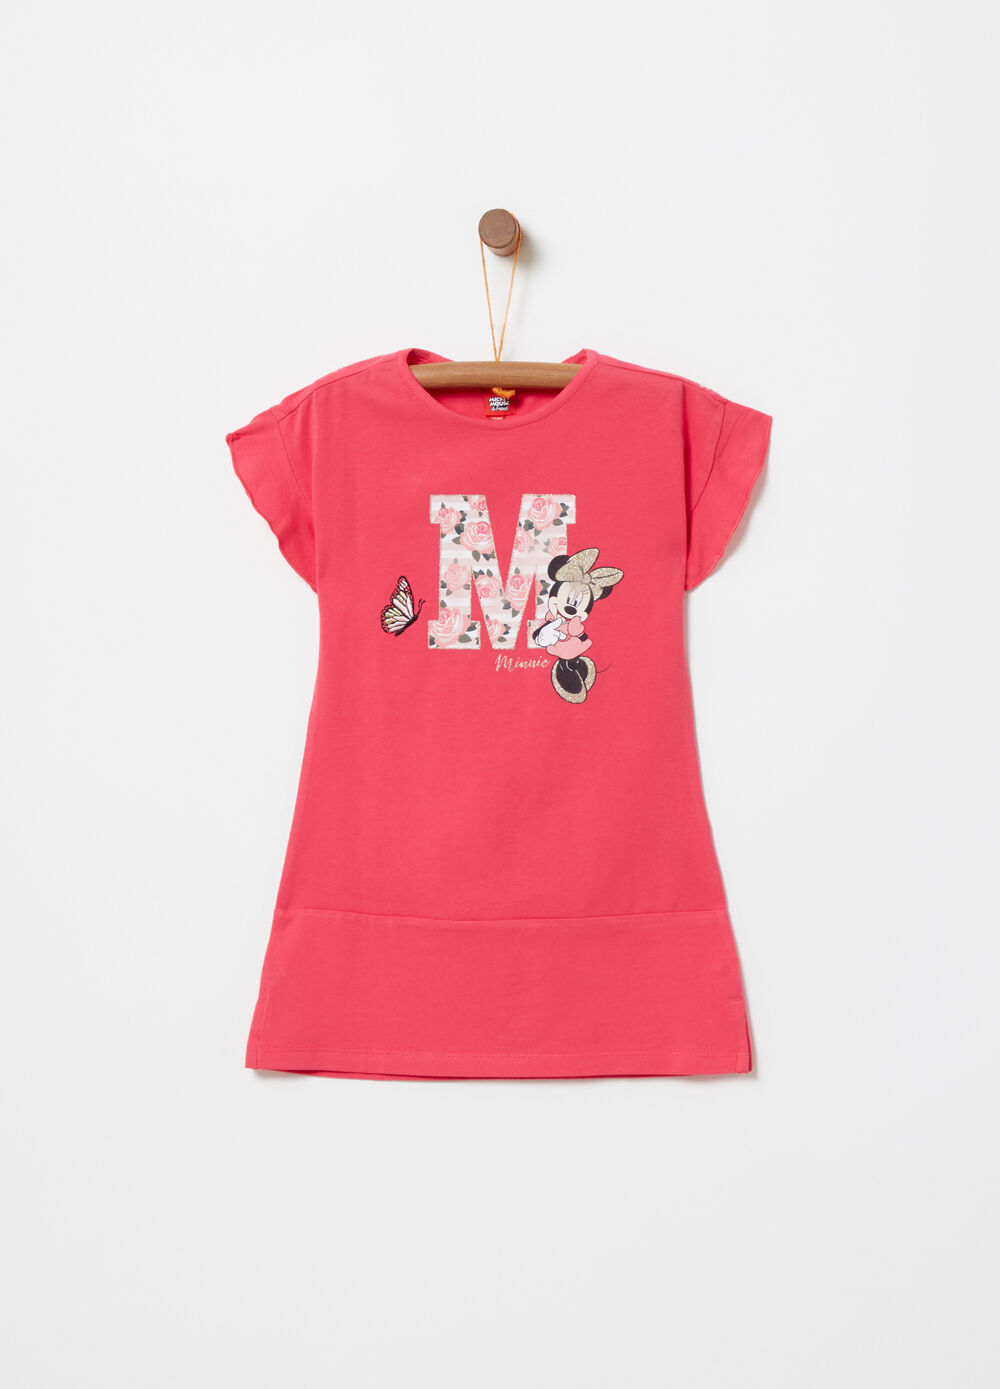 Jersey dress with Disney Minnie Mouse embroidery